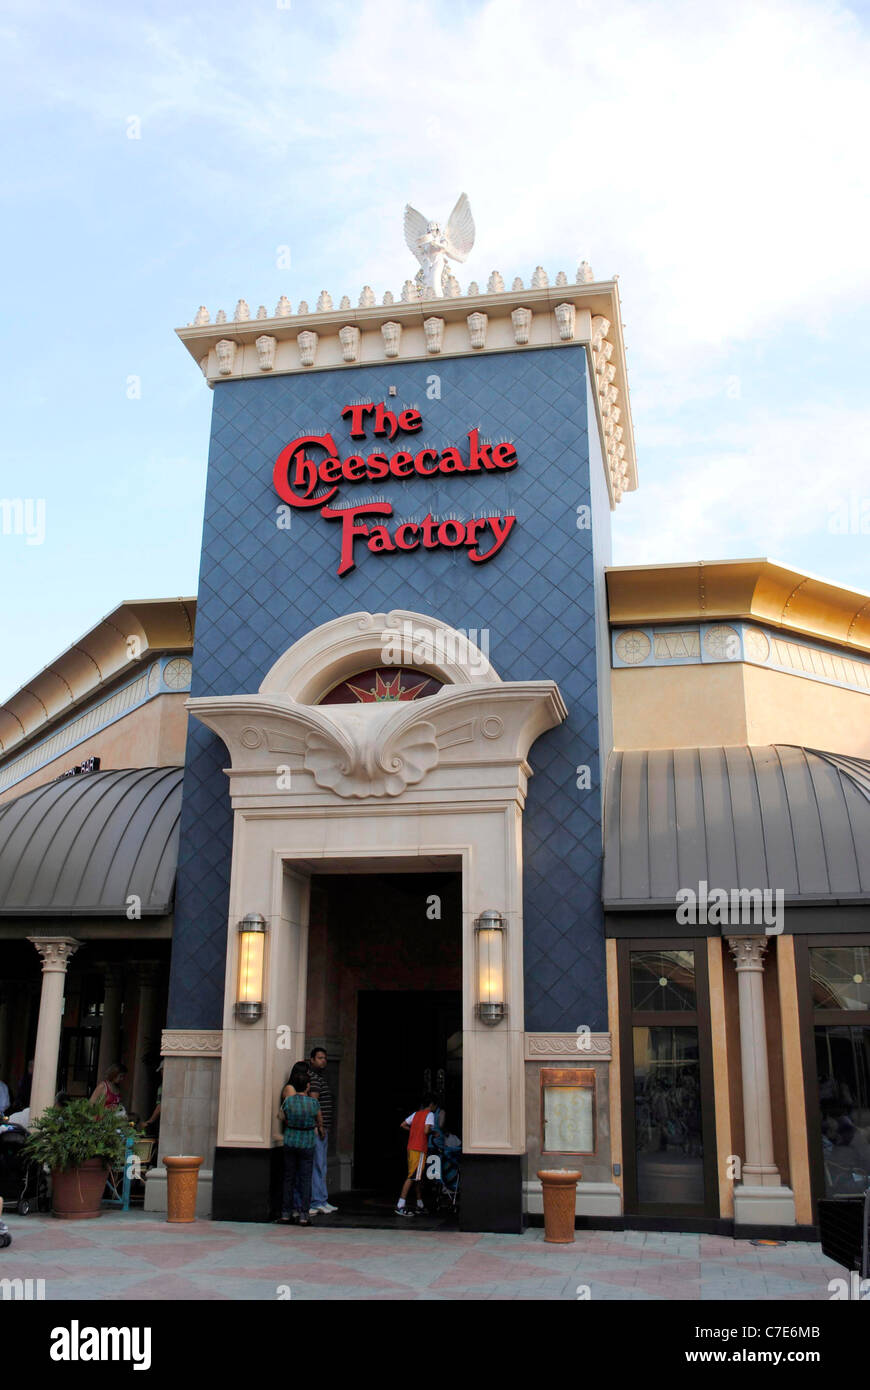 The Cheesecake Factory - Stock Image